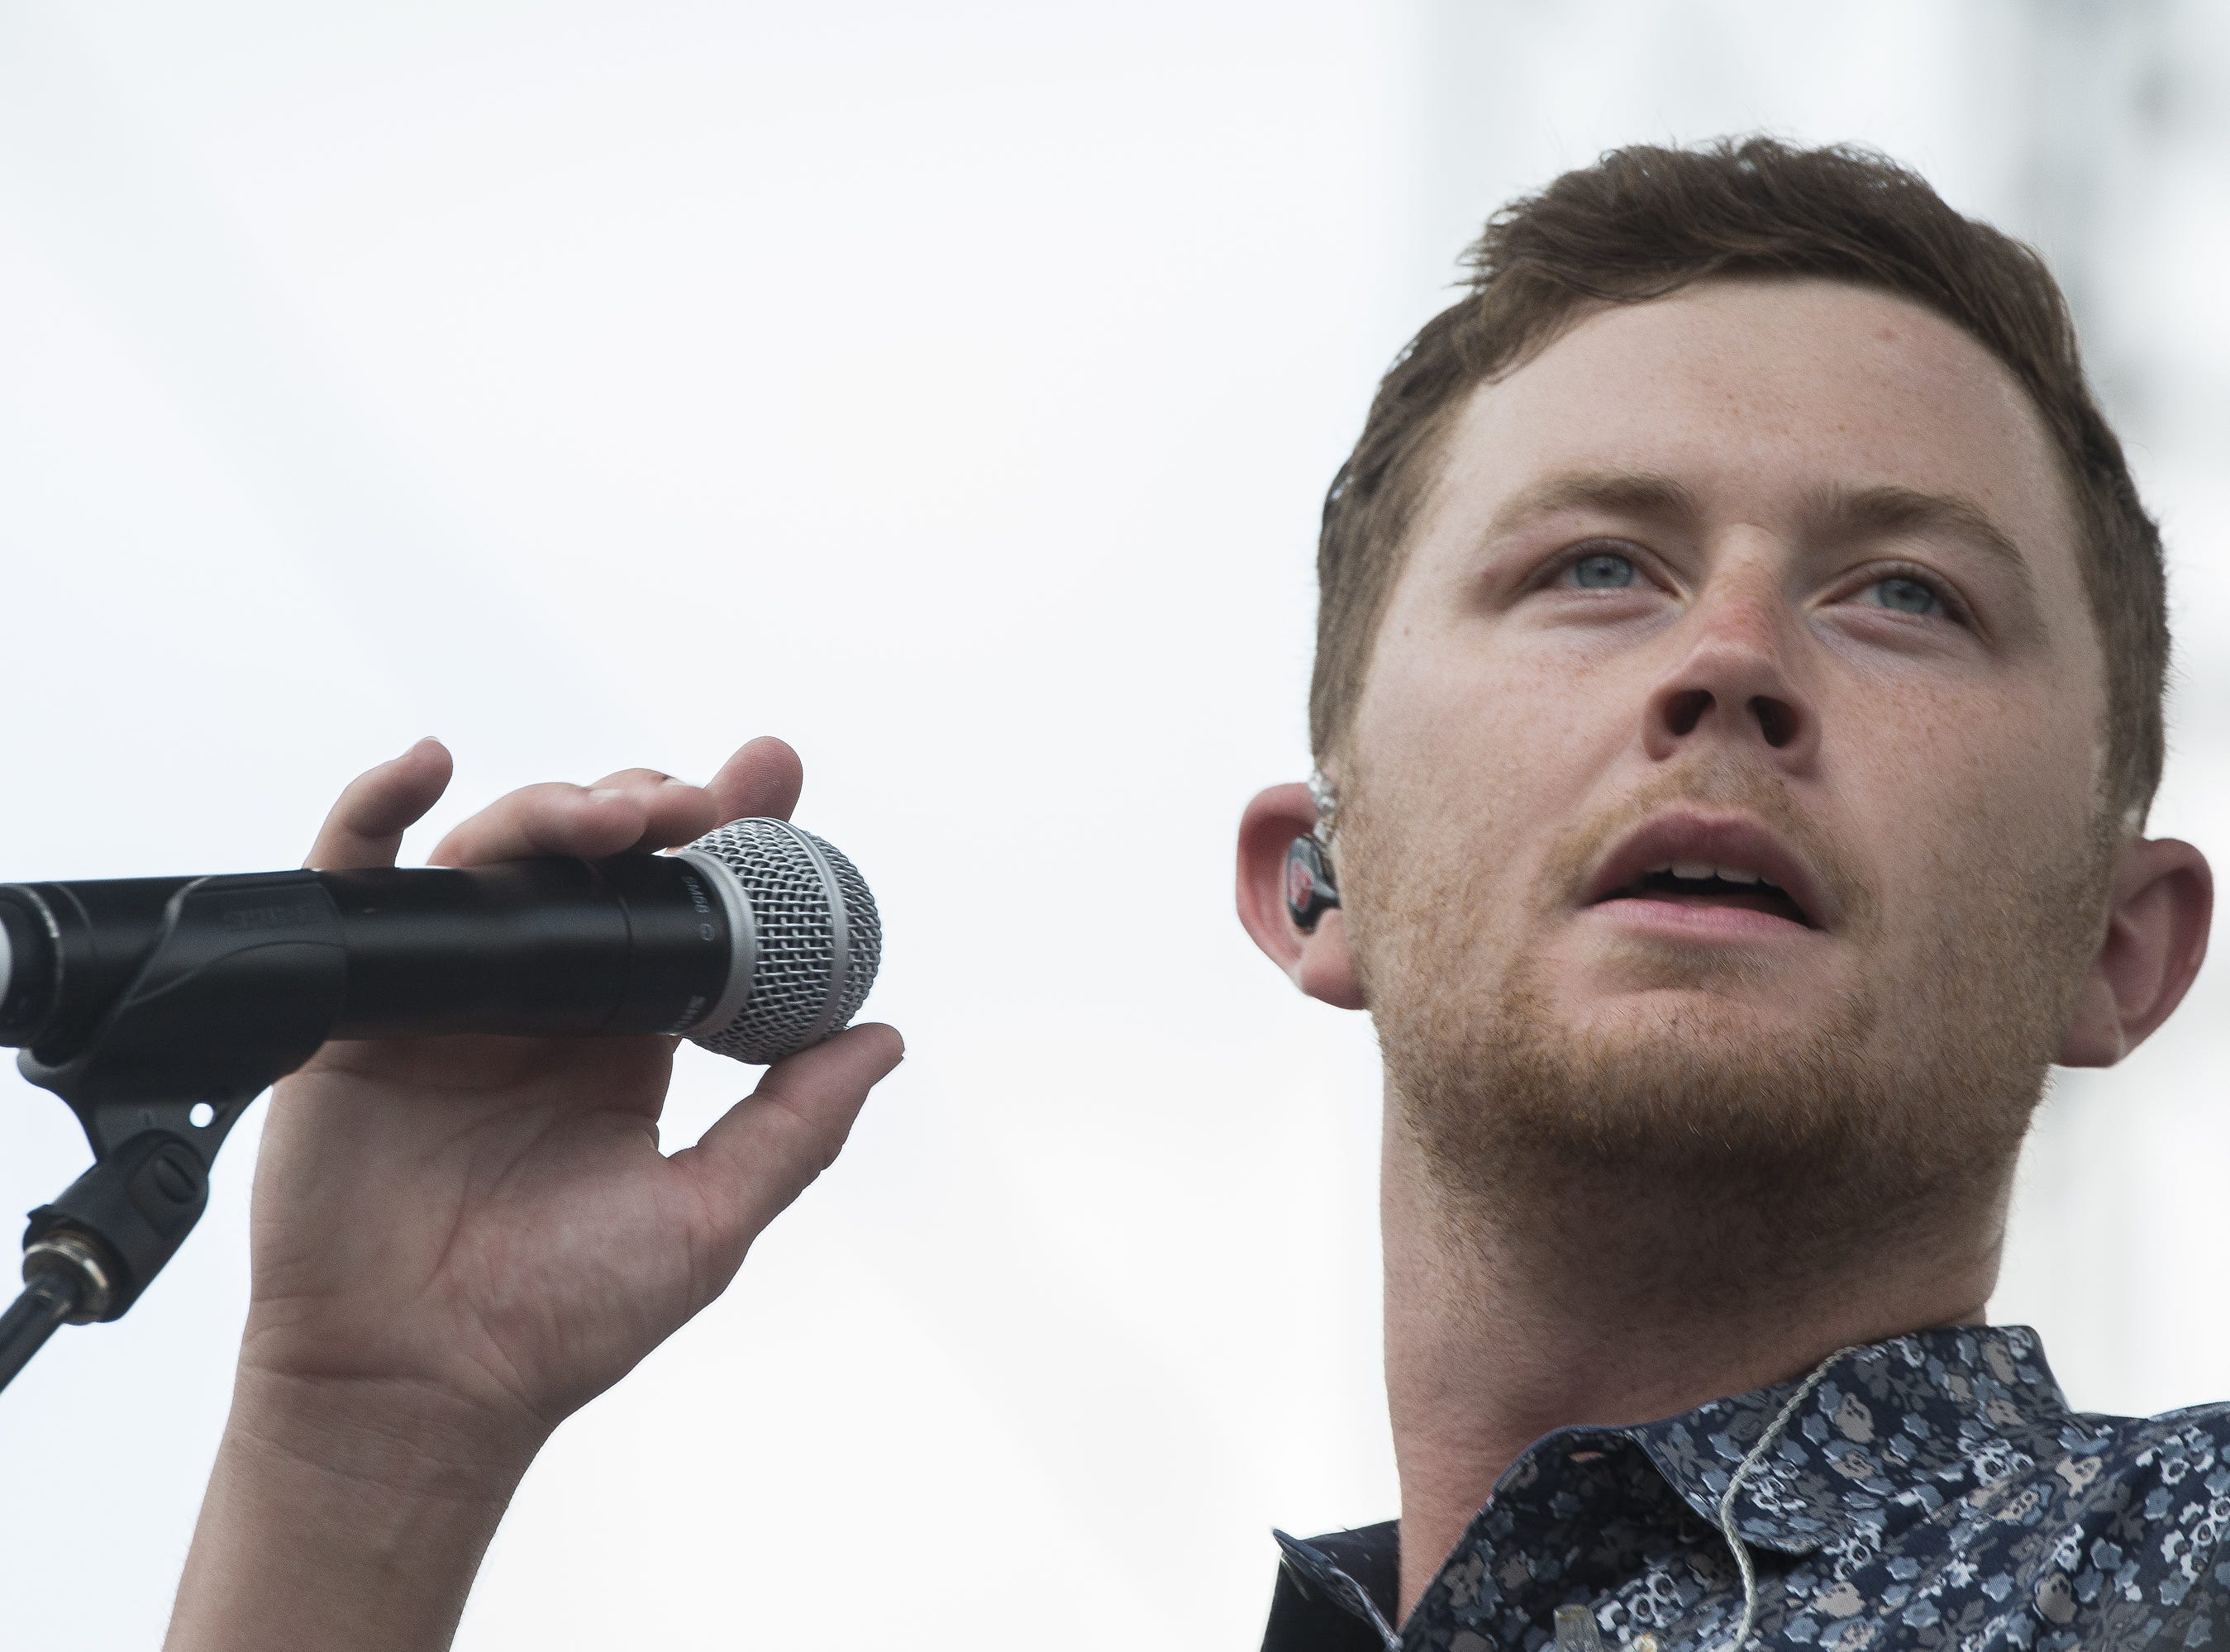 Scotty McCreery is scheduled to play the Chevy Riverfront Stage at CMA Fest 2019.